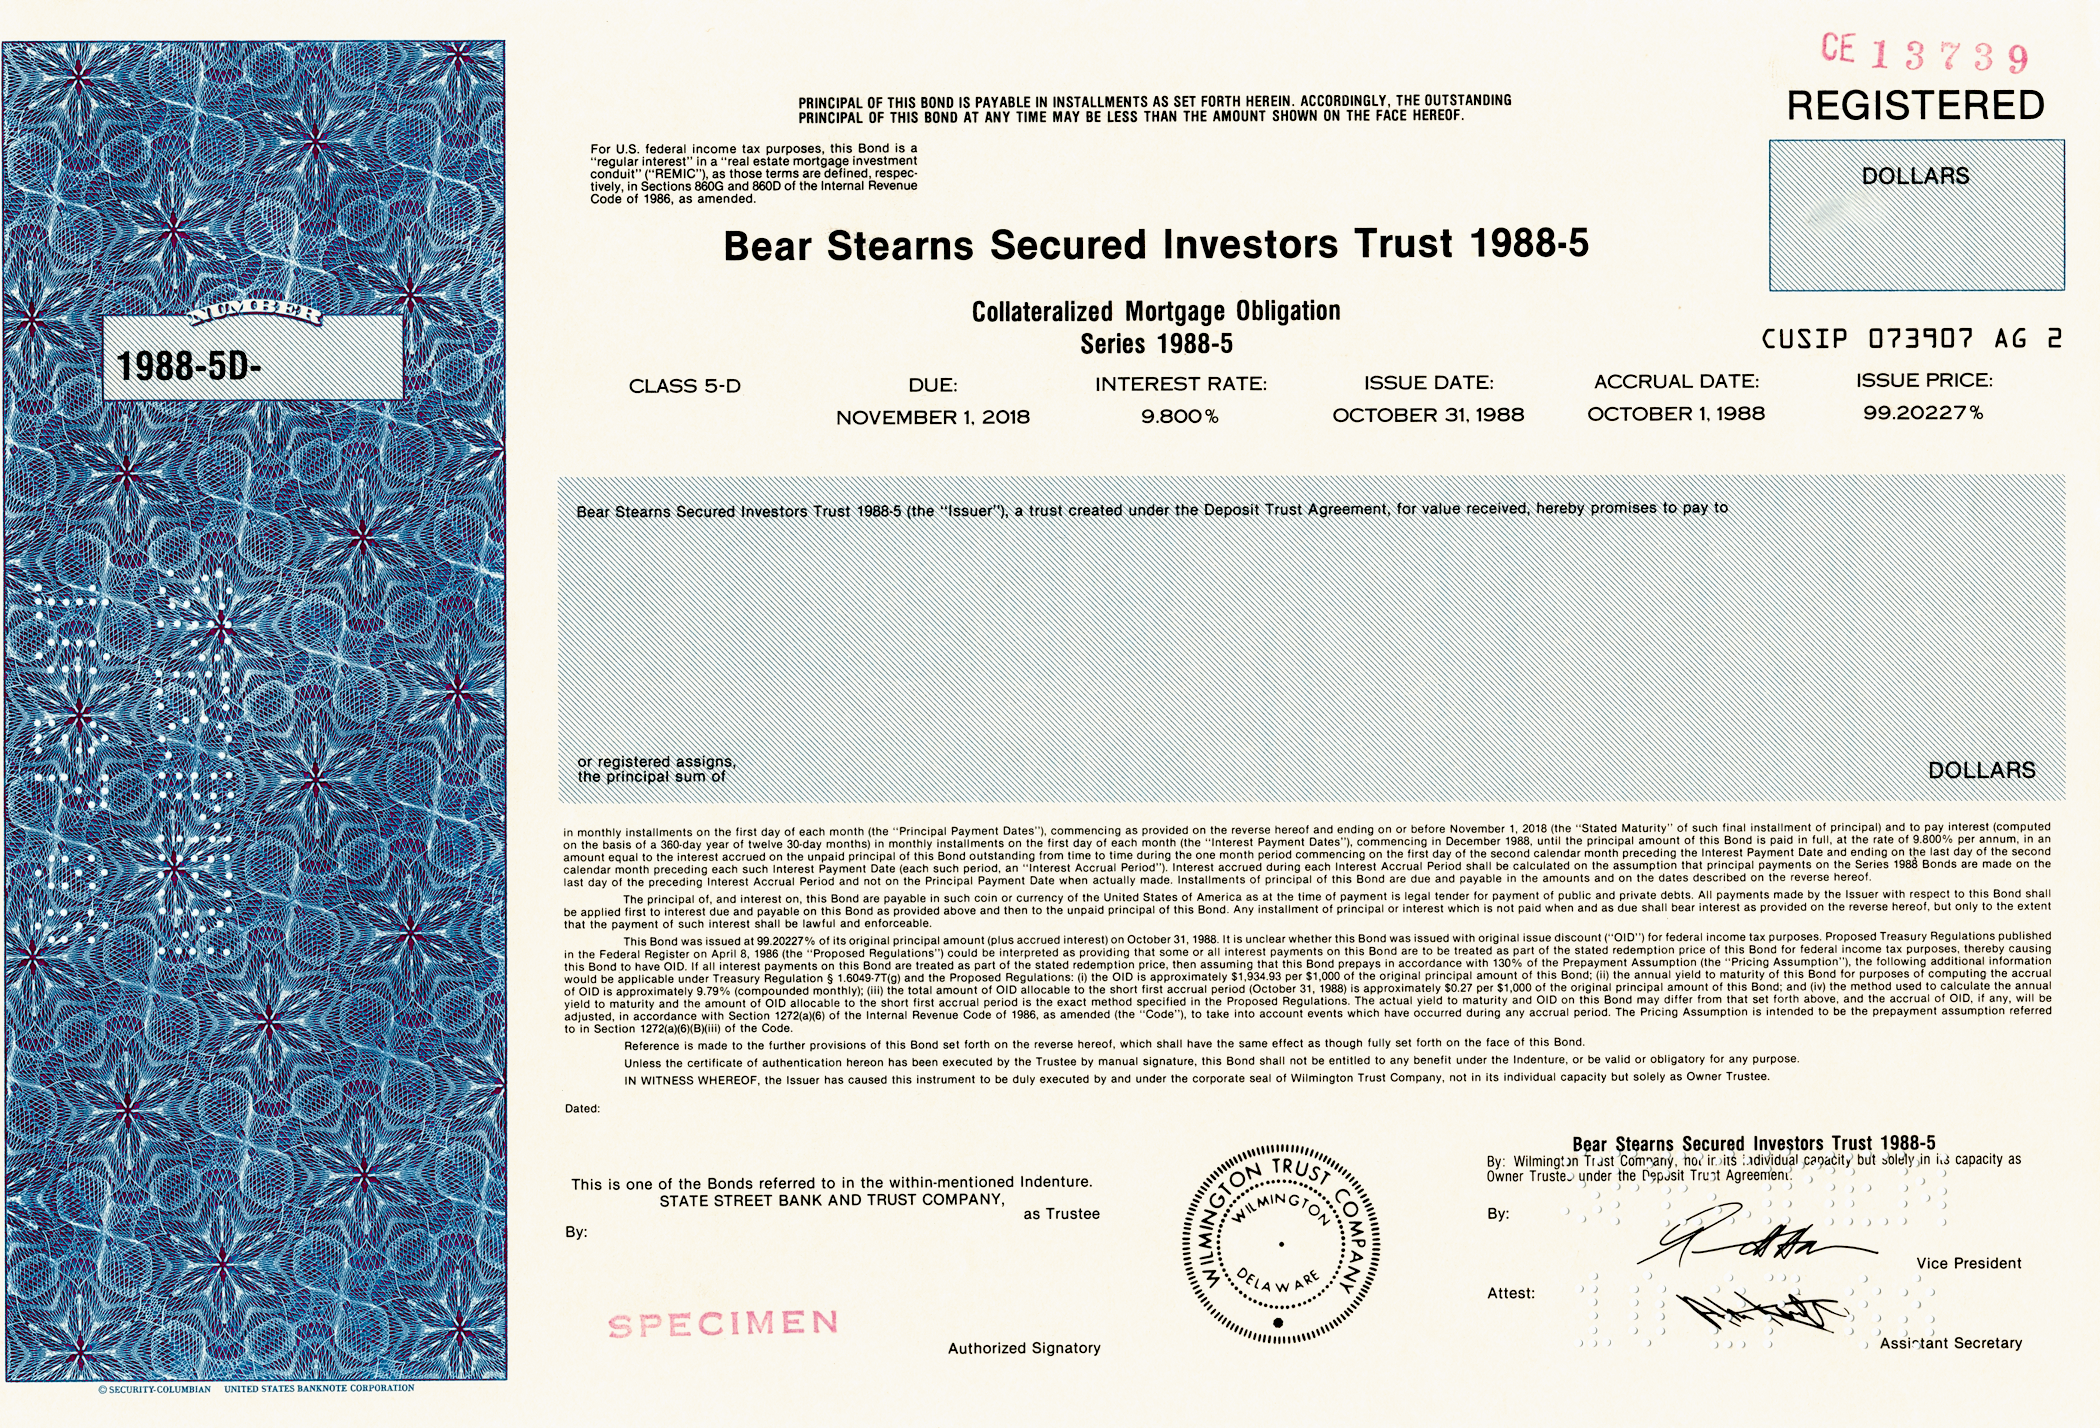 Bear Stearns Secured Investors Trust Specimen Certificate - 1988 - Wall Street Treasures